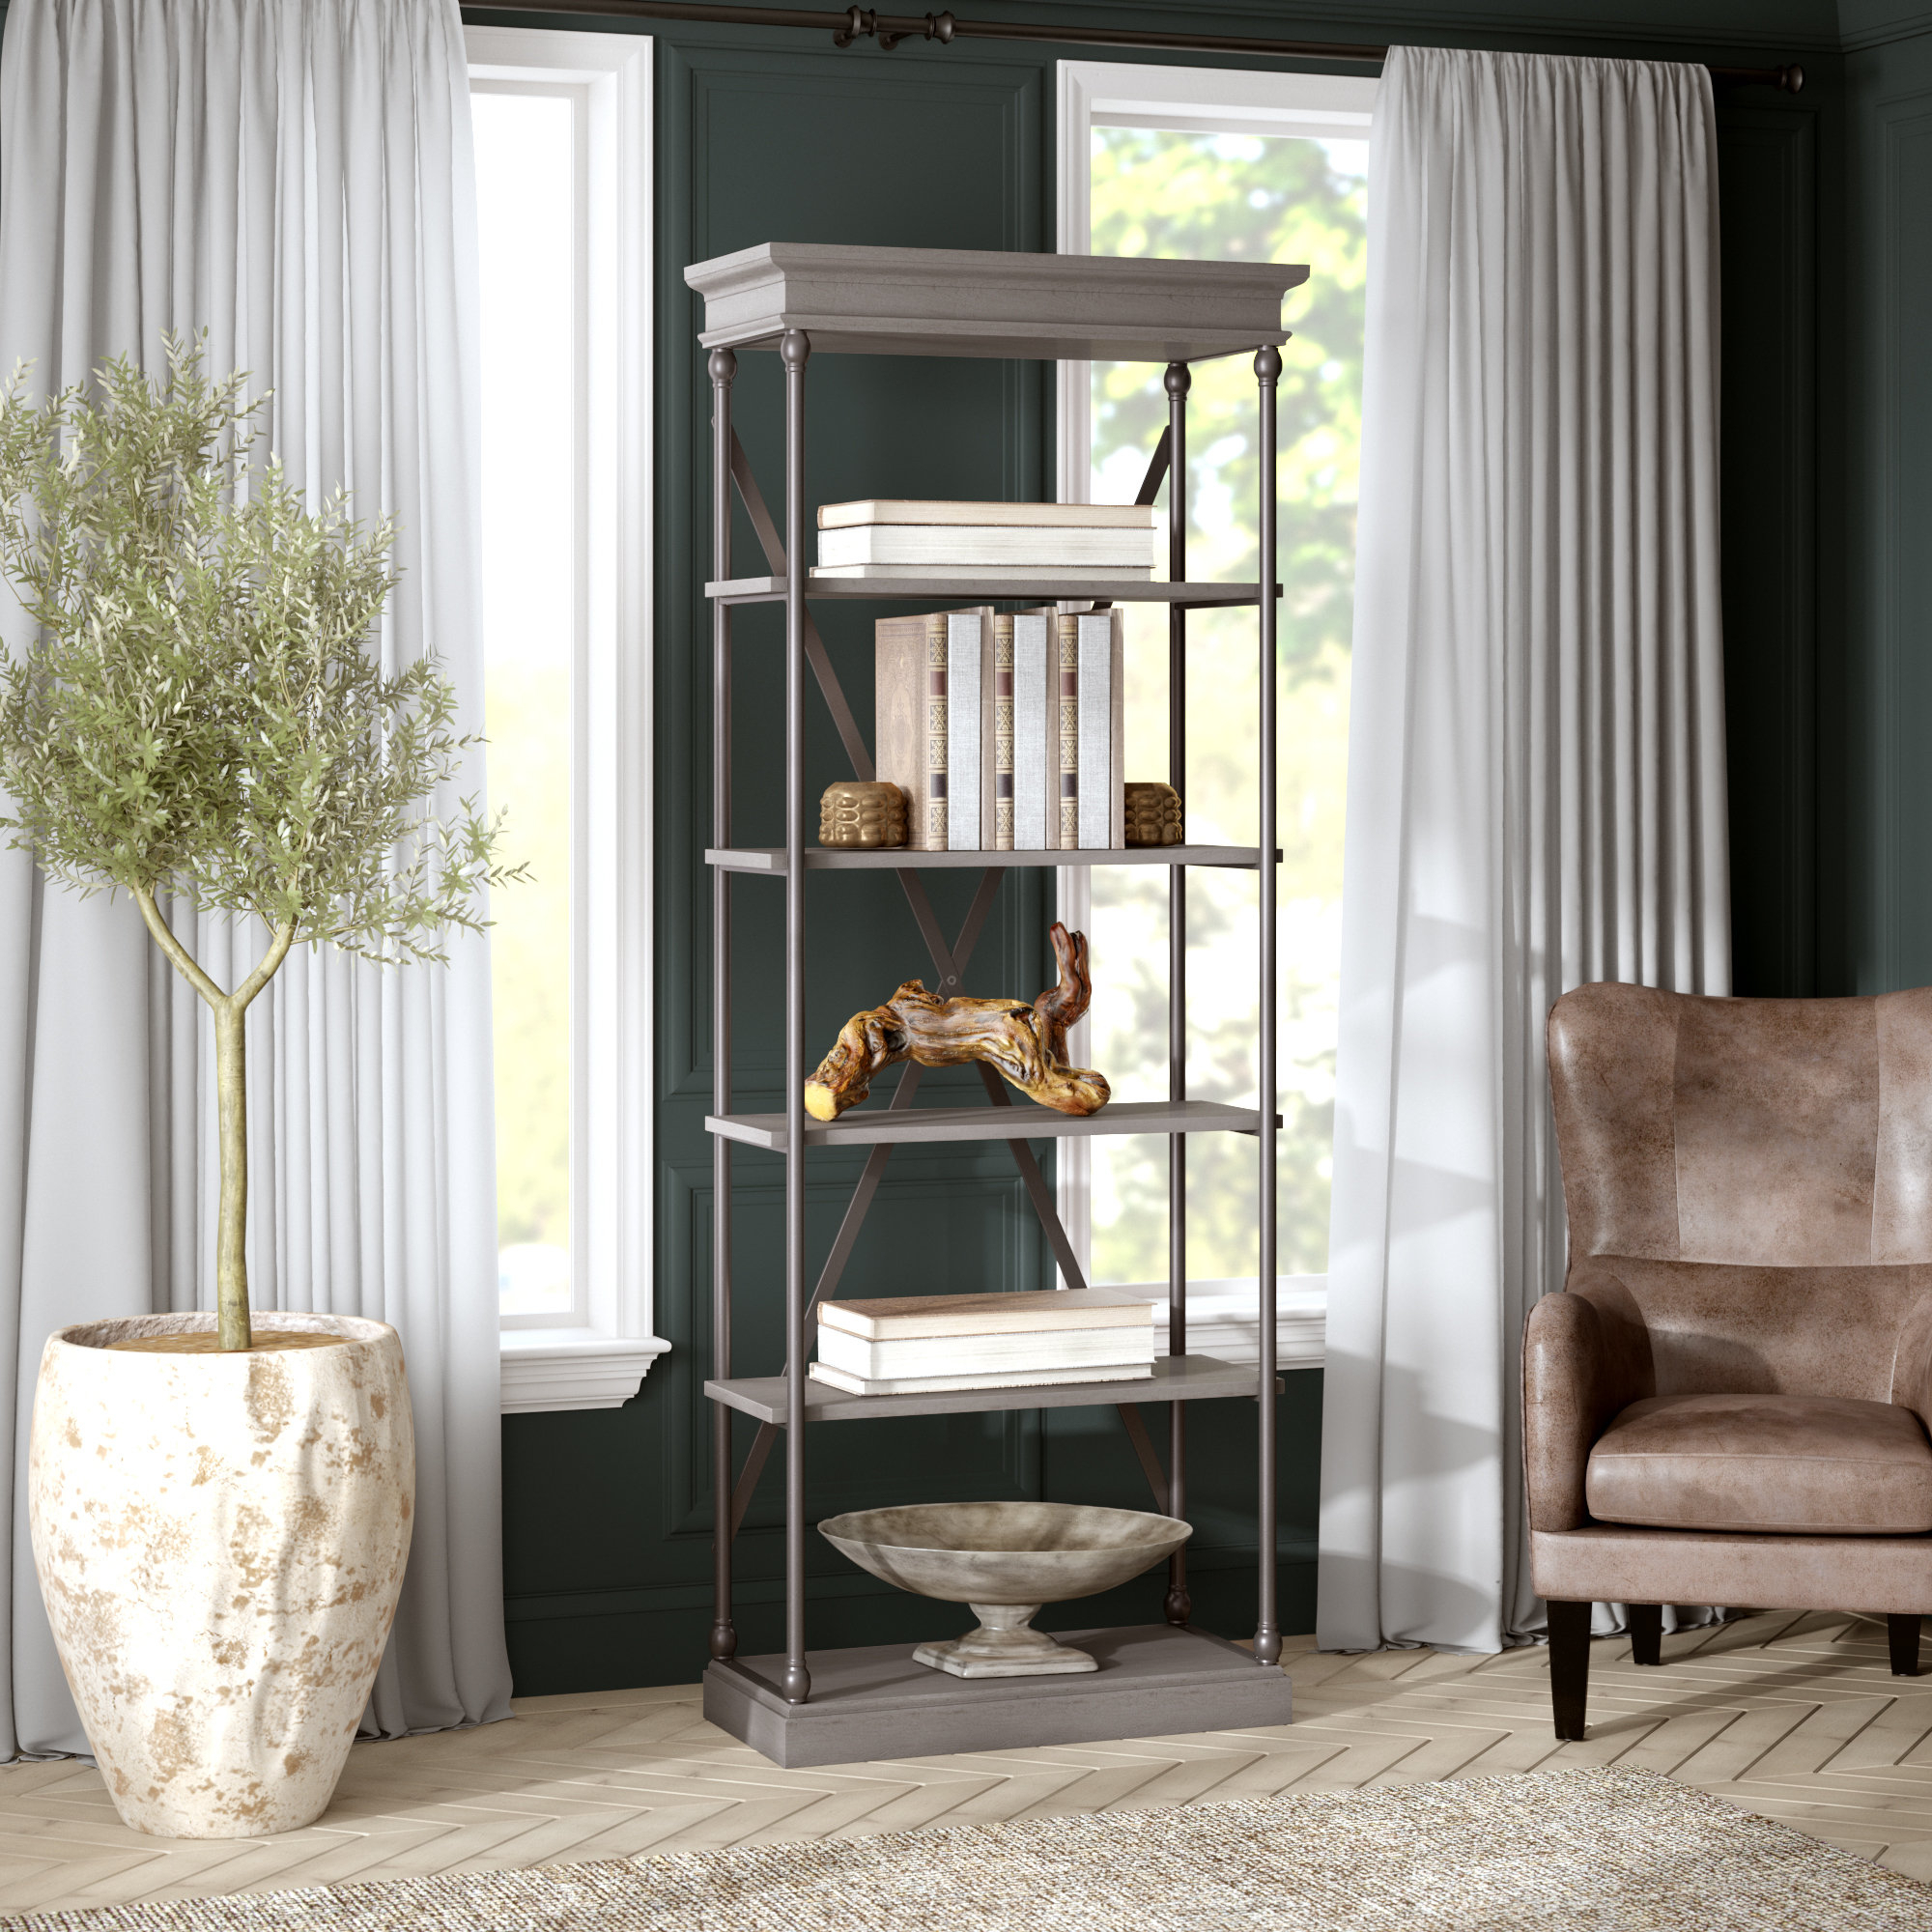 Poynor Etagere Bookcases With Regard To 2020 Poynor Etagere Bookcase (View 13 of 20)